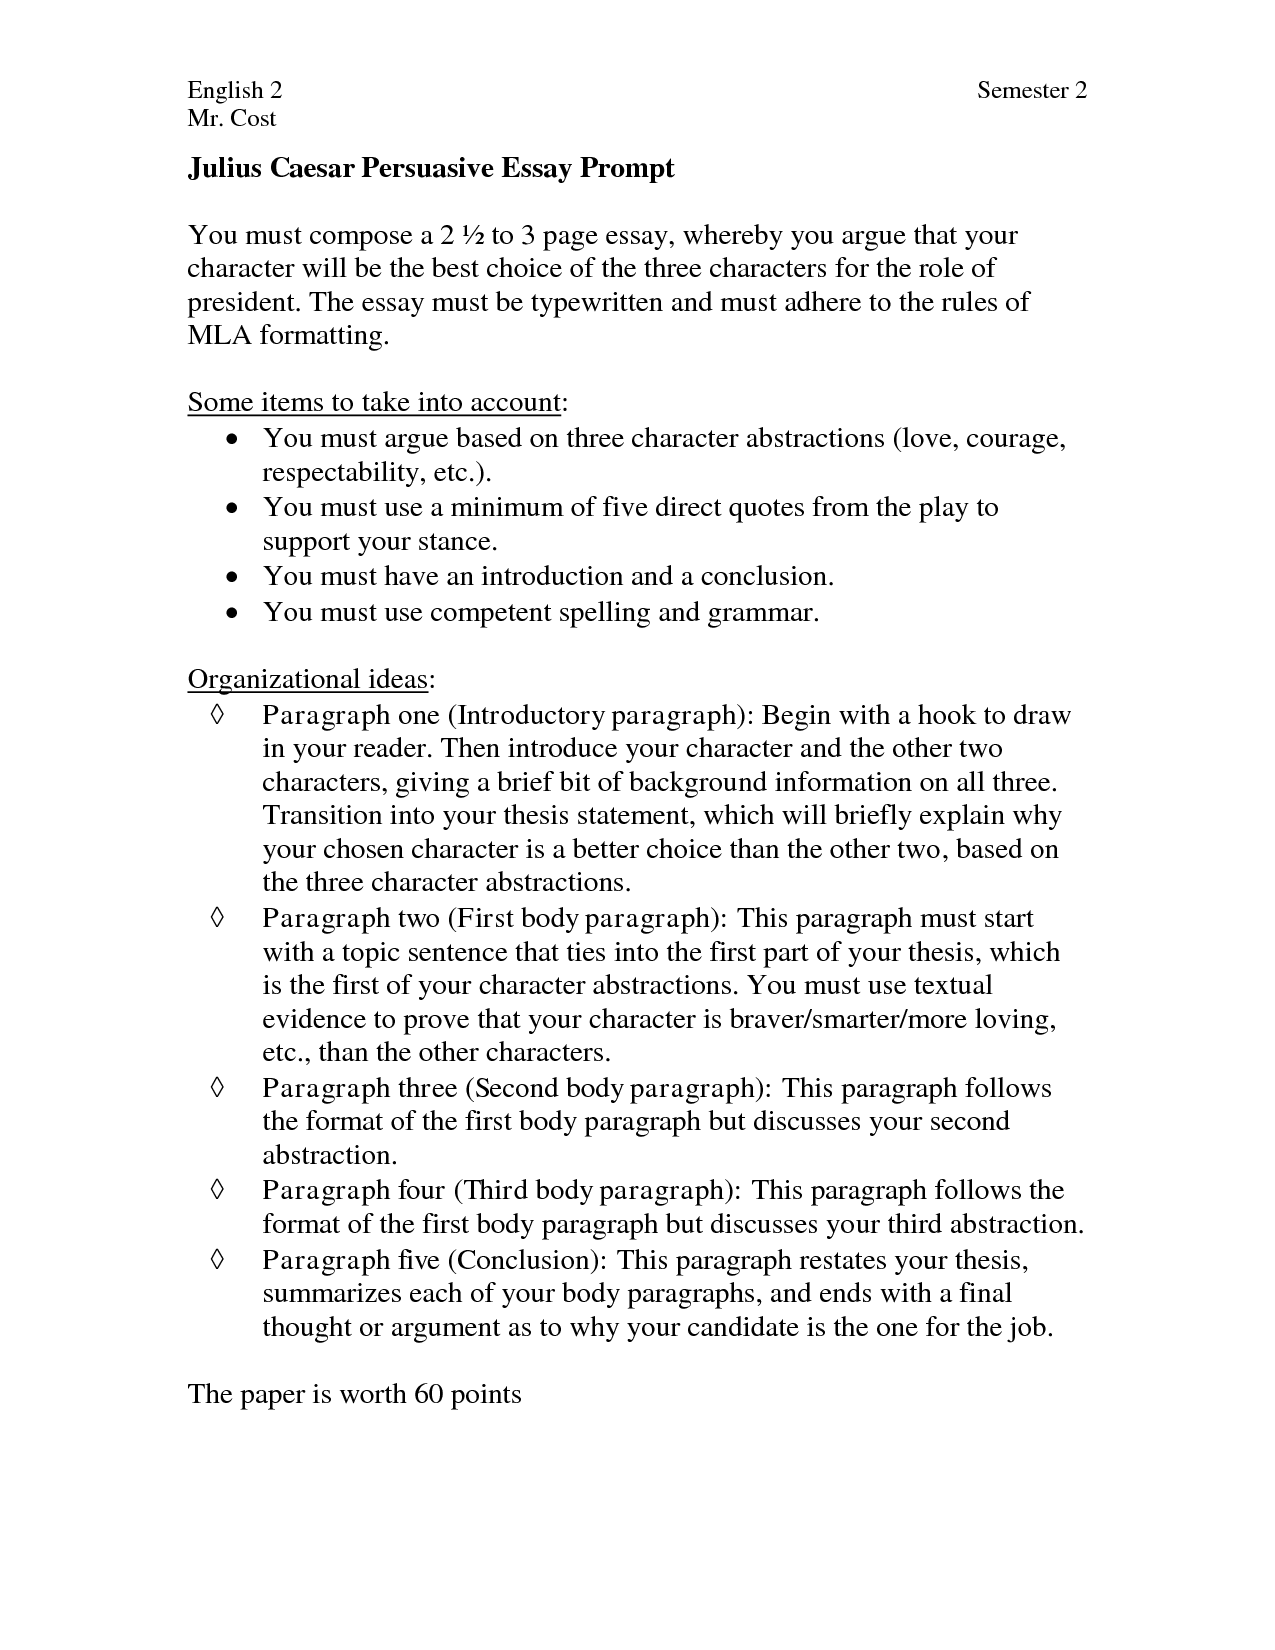 Persuasive essay example middle school